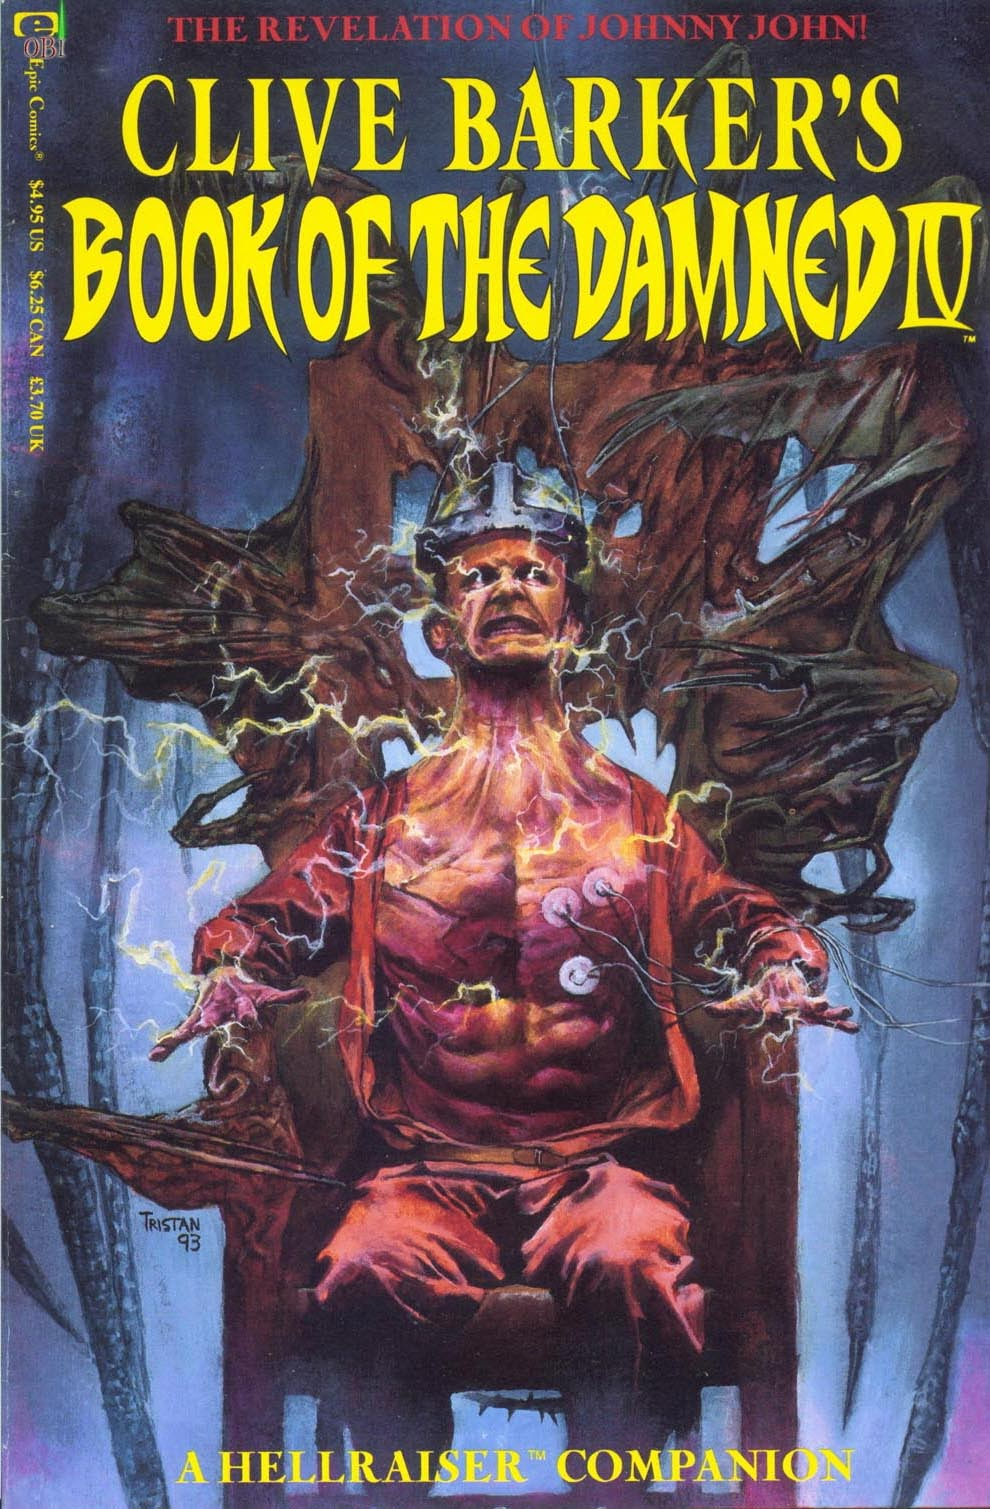 Clive Barkers Book of the Damned: A Hellraiser Companion 4 Page 1